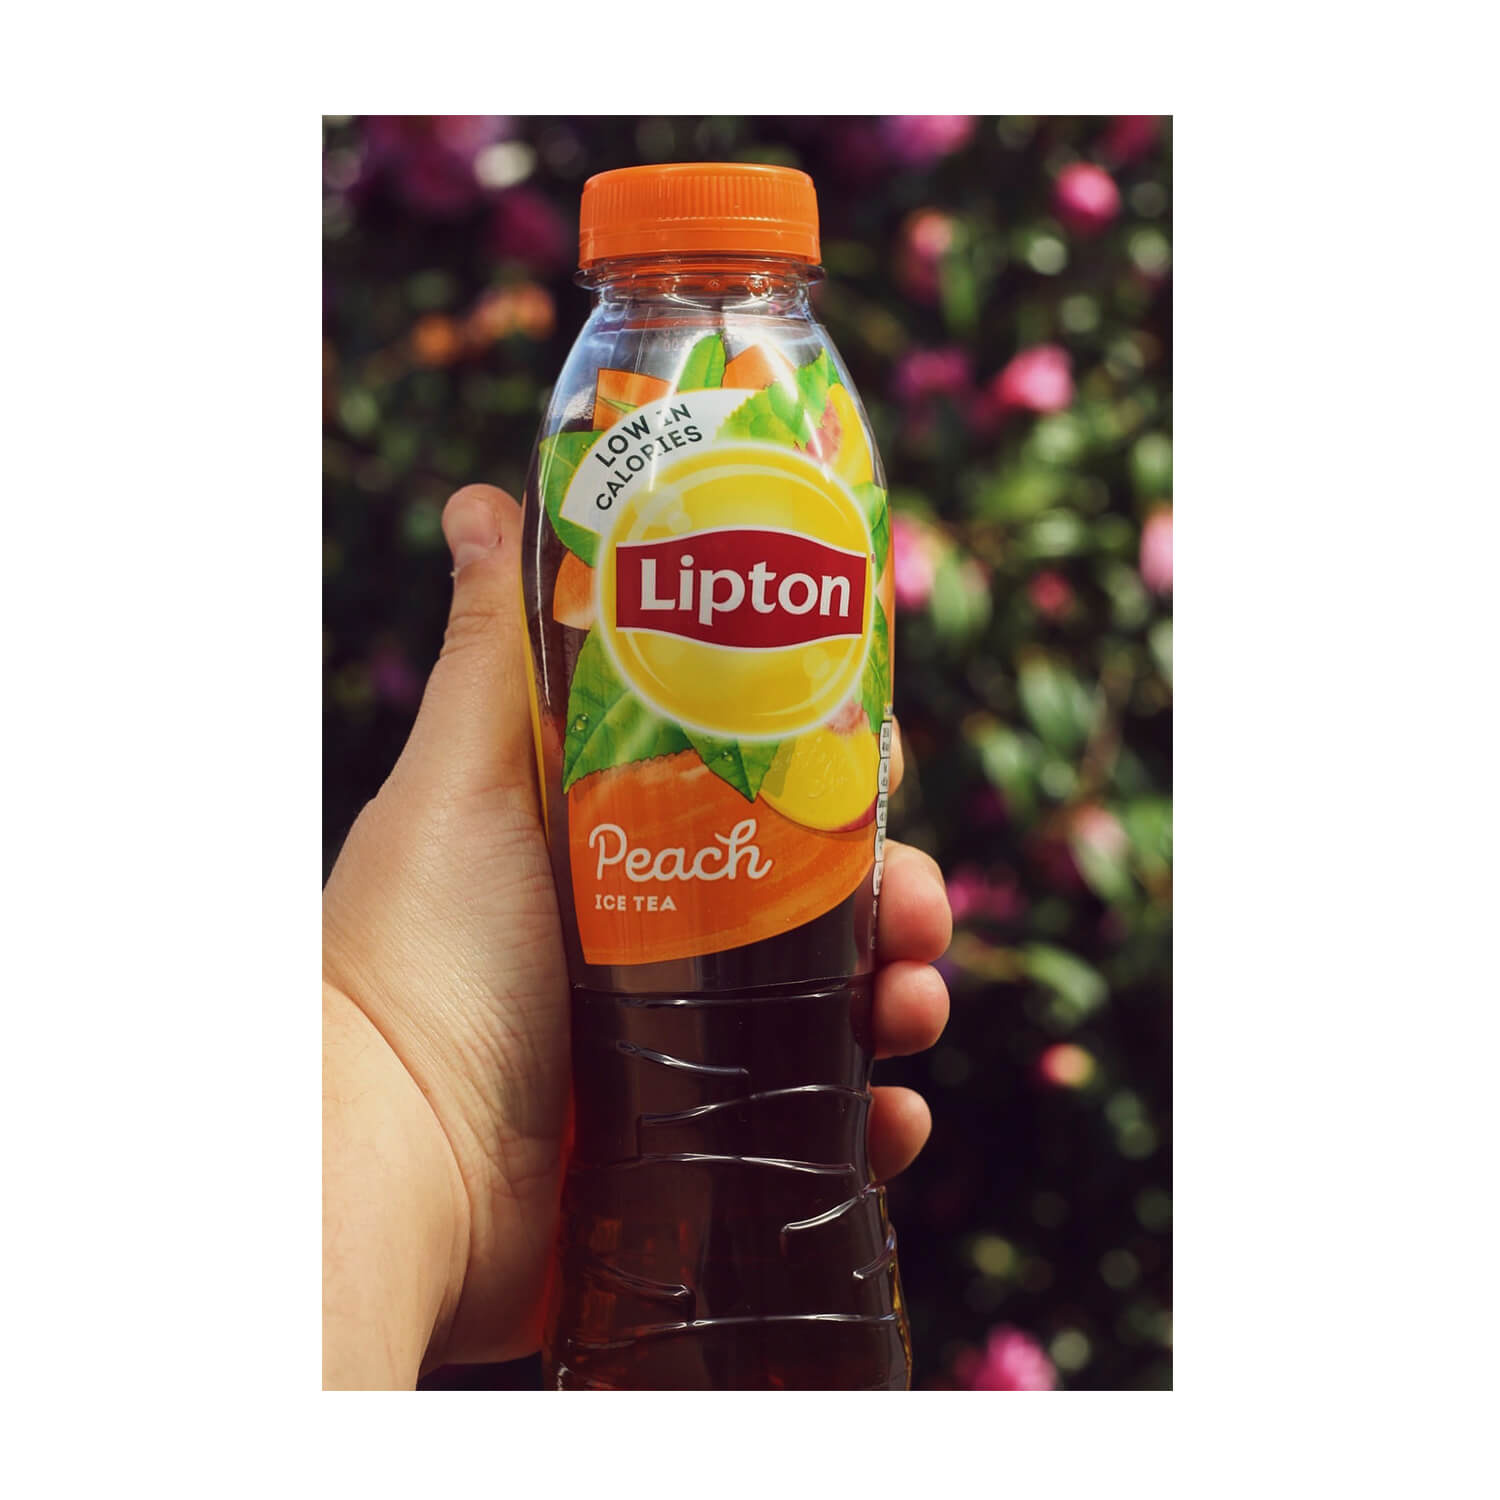 My favourite drink